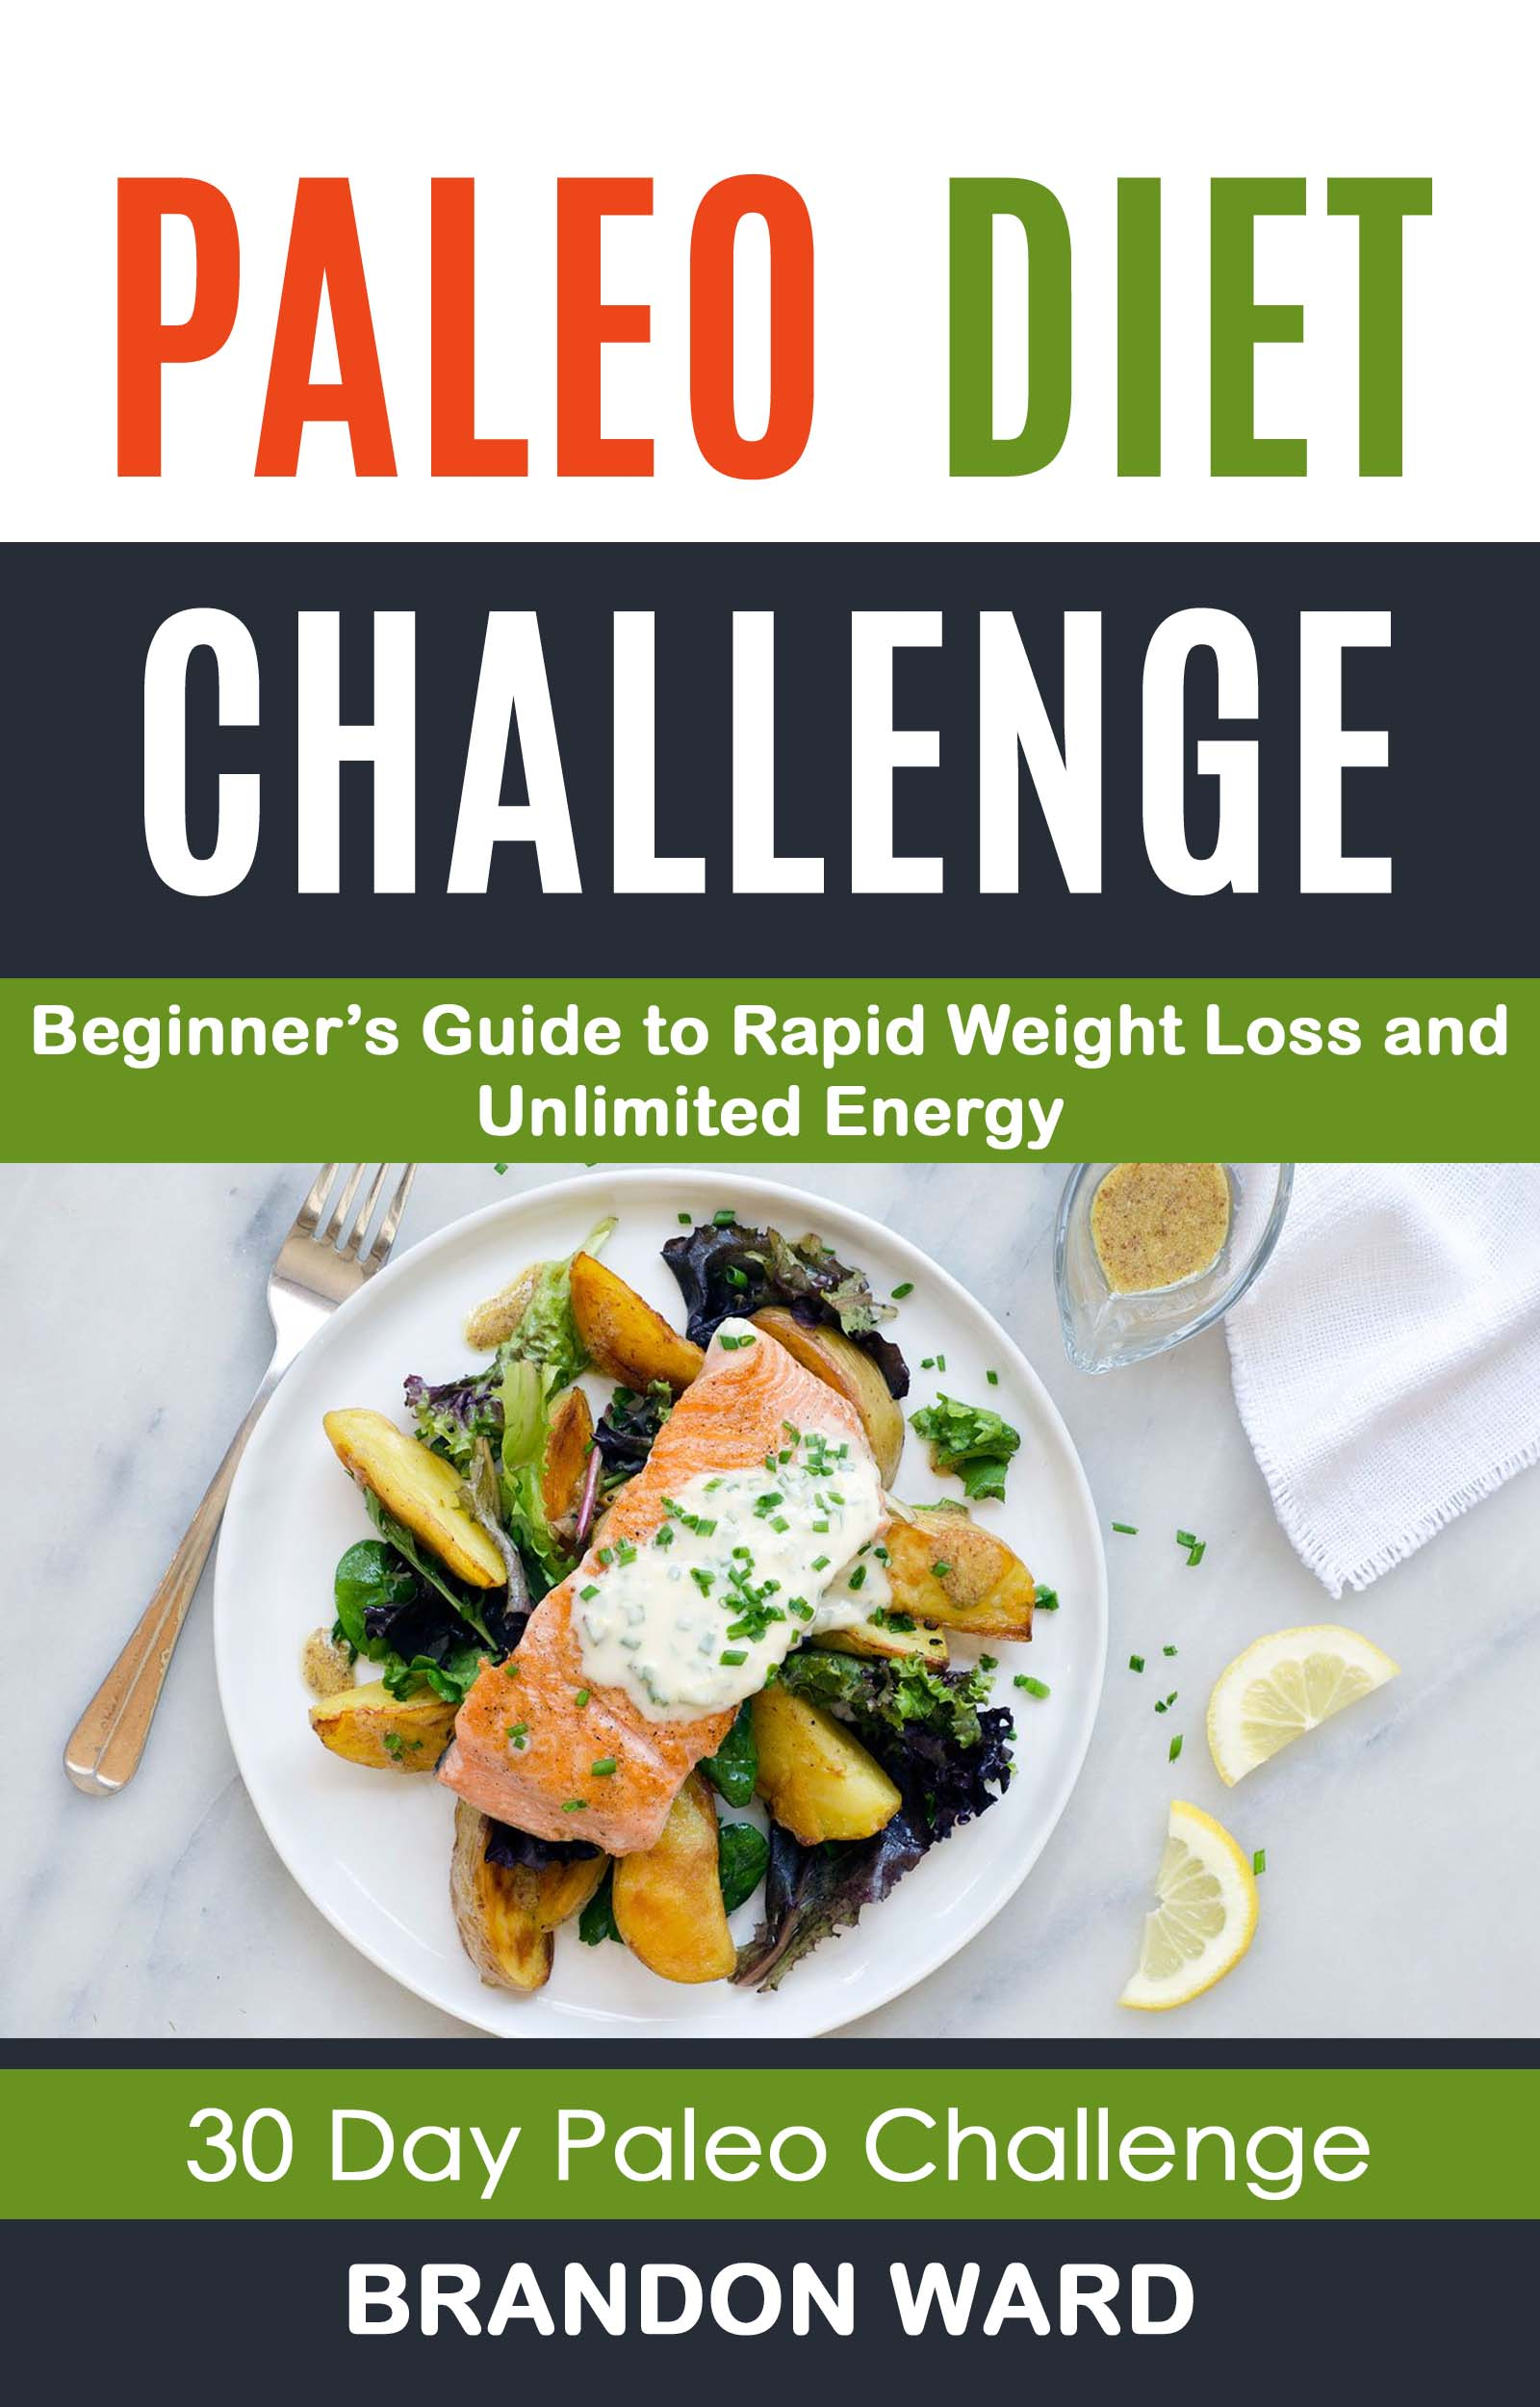 Paleo diet challenge: beginner's guide to rapid weight loss and unlimited energy